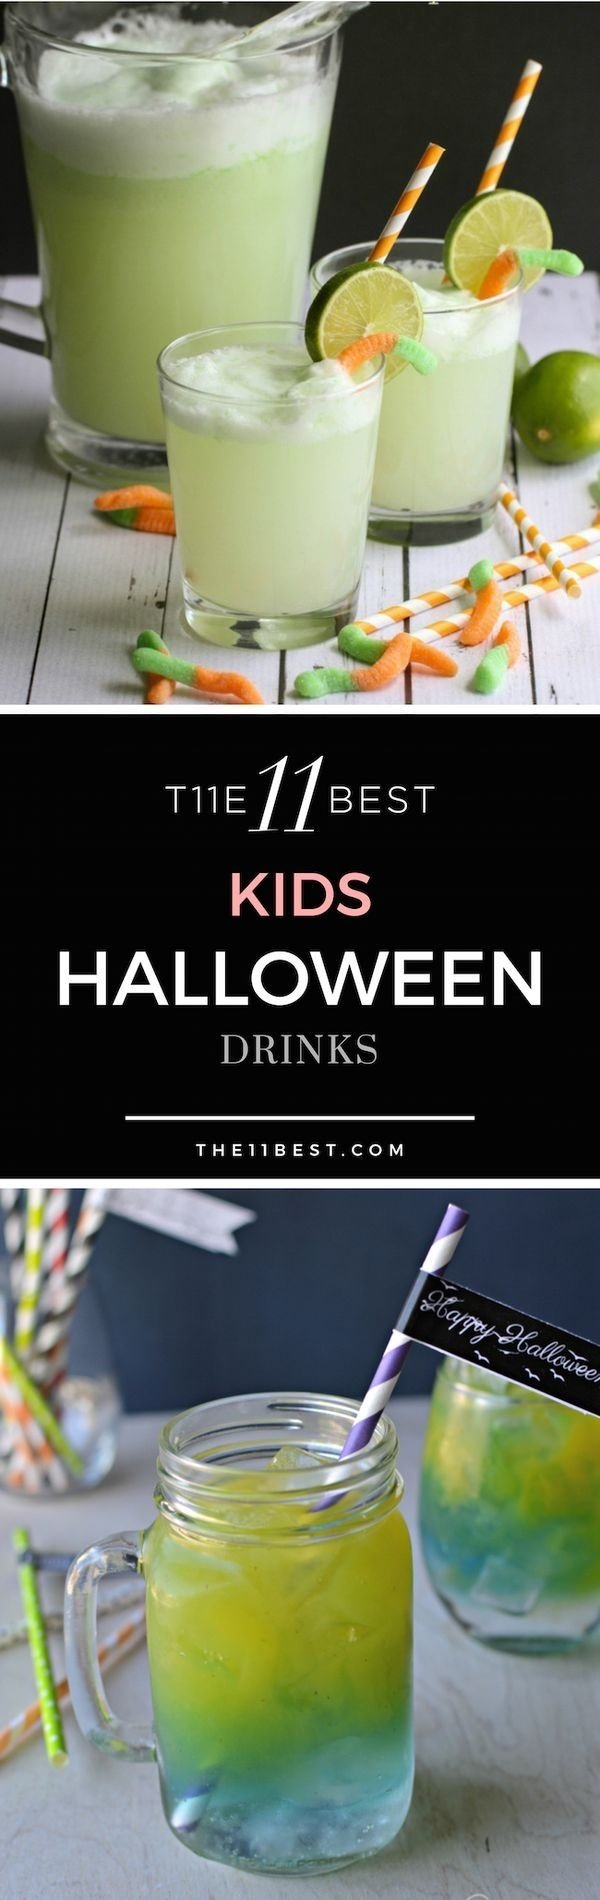 10 Amazing Halloween Drink Ideas For Kids the 11 best halloween drink recipes for kids 2021